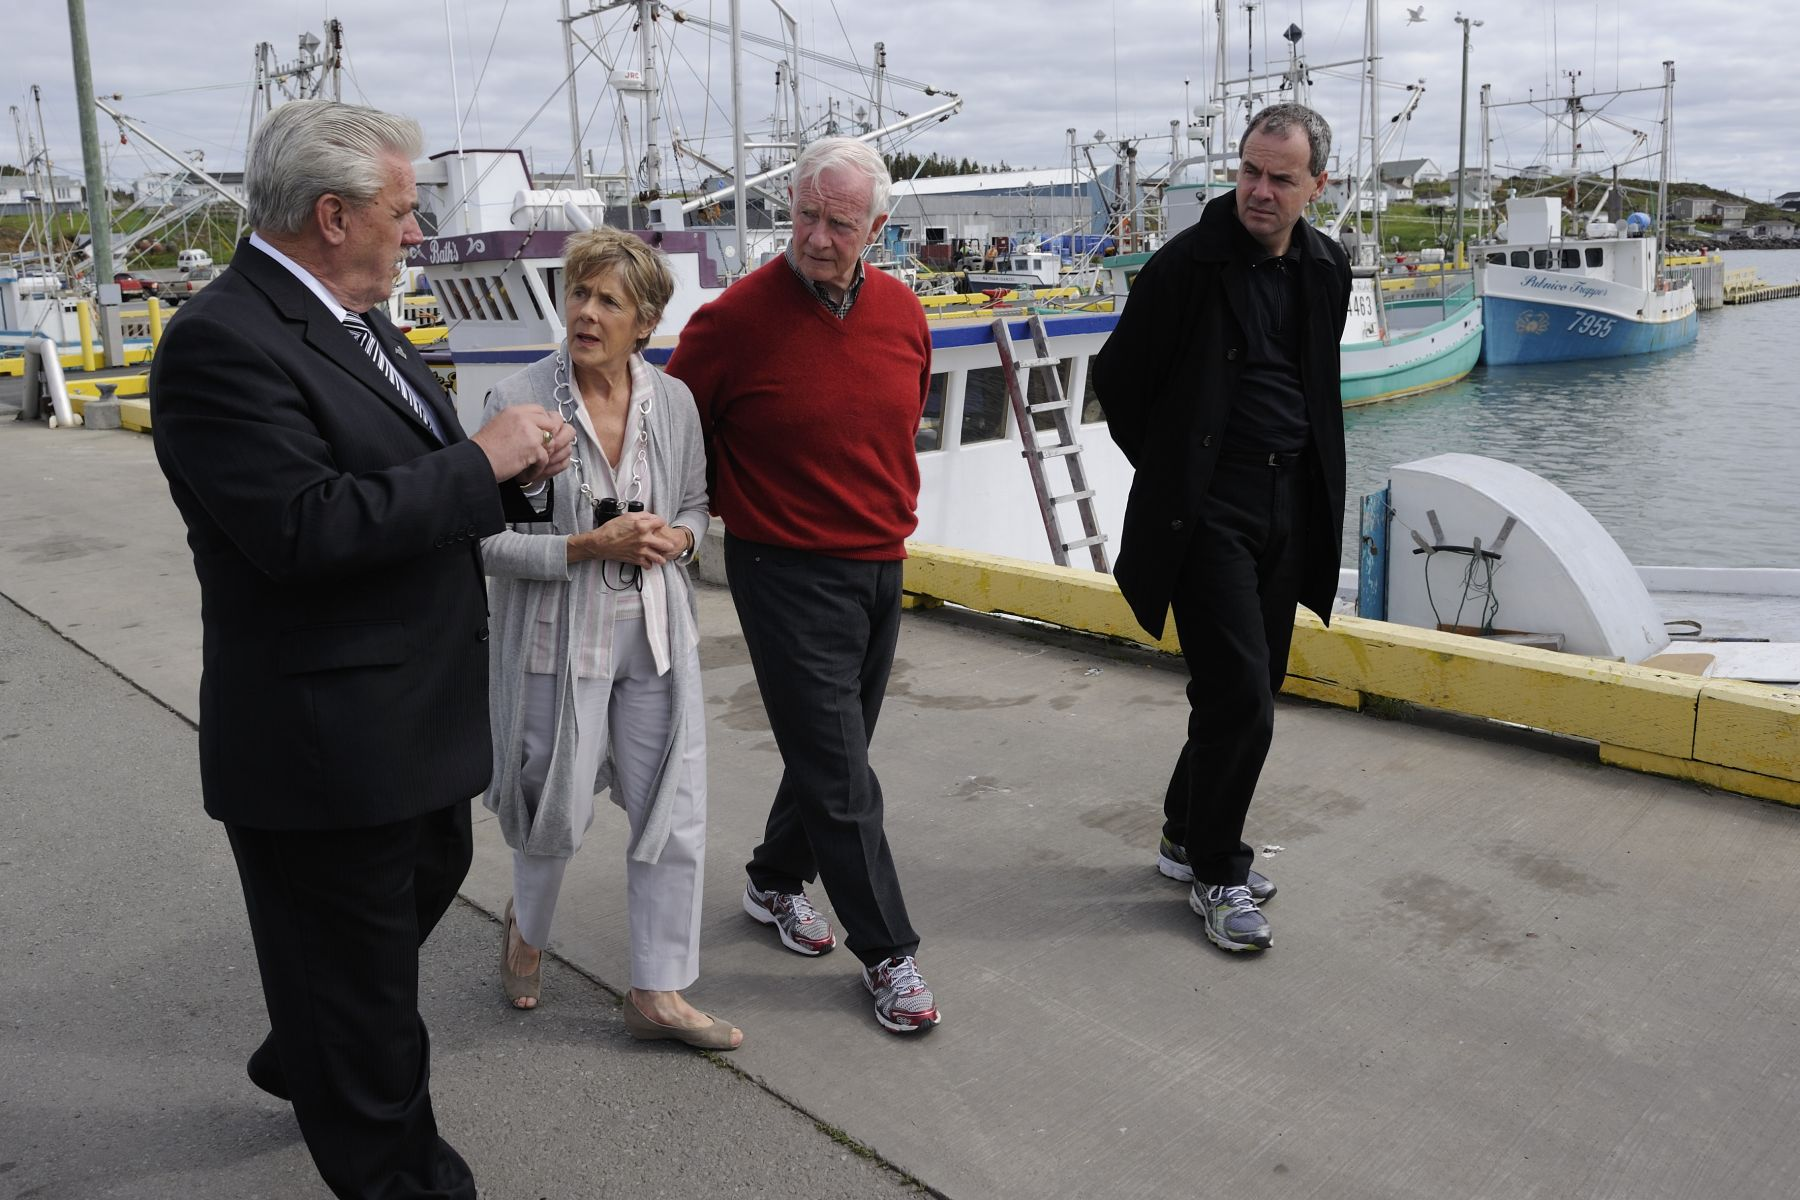 They also visited the harbour-wharf with His Worship Gordon Noseworthy, Mayor of Twillingate (left), to learn about the evolution of fisheries in the region.